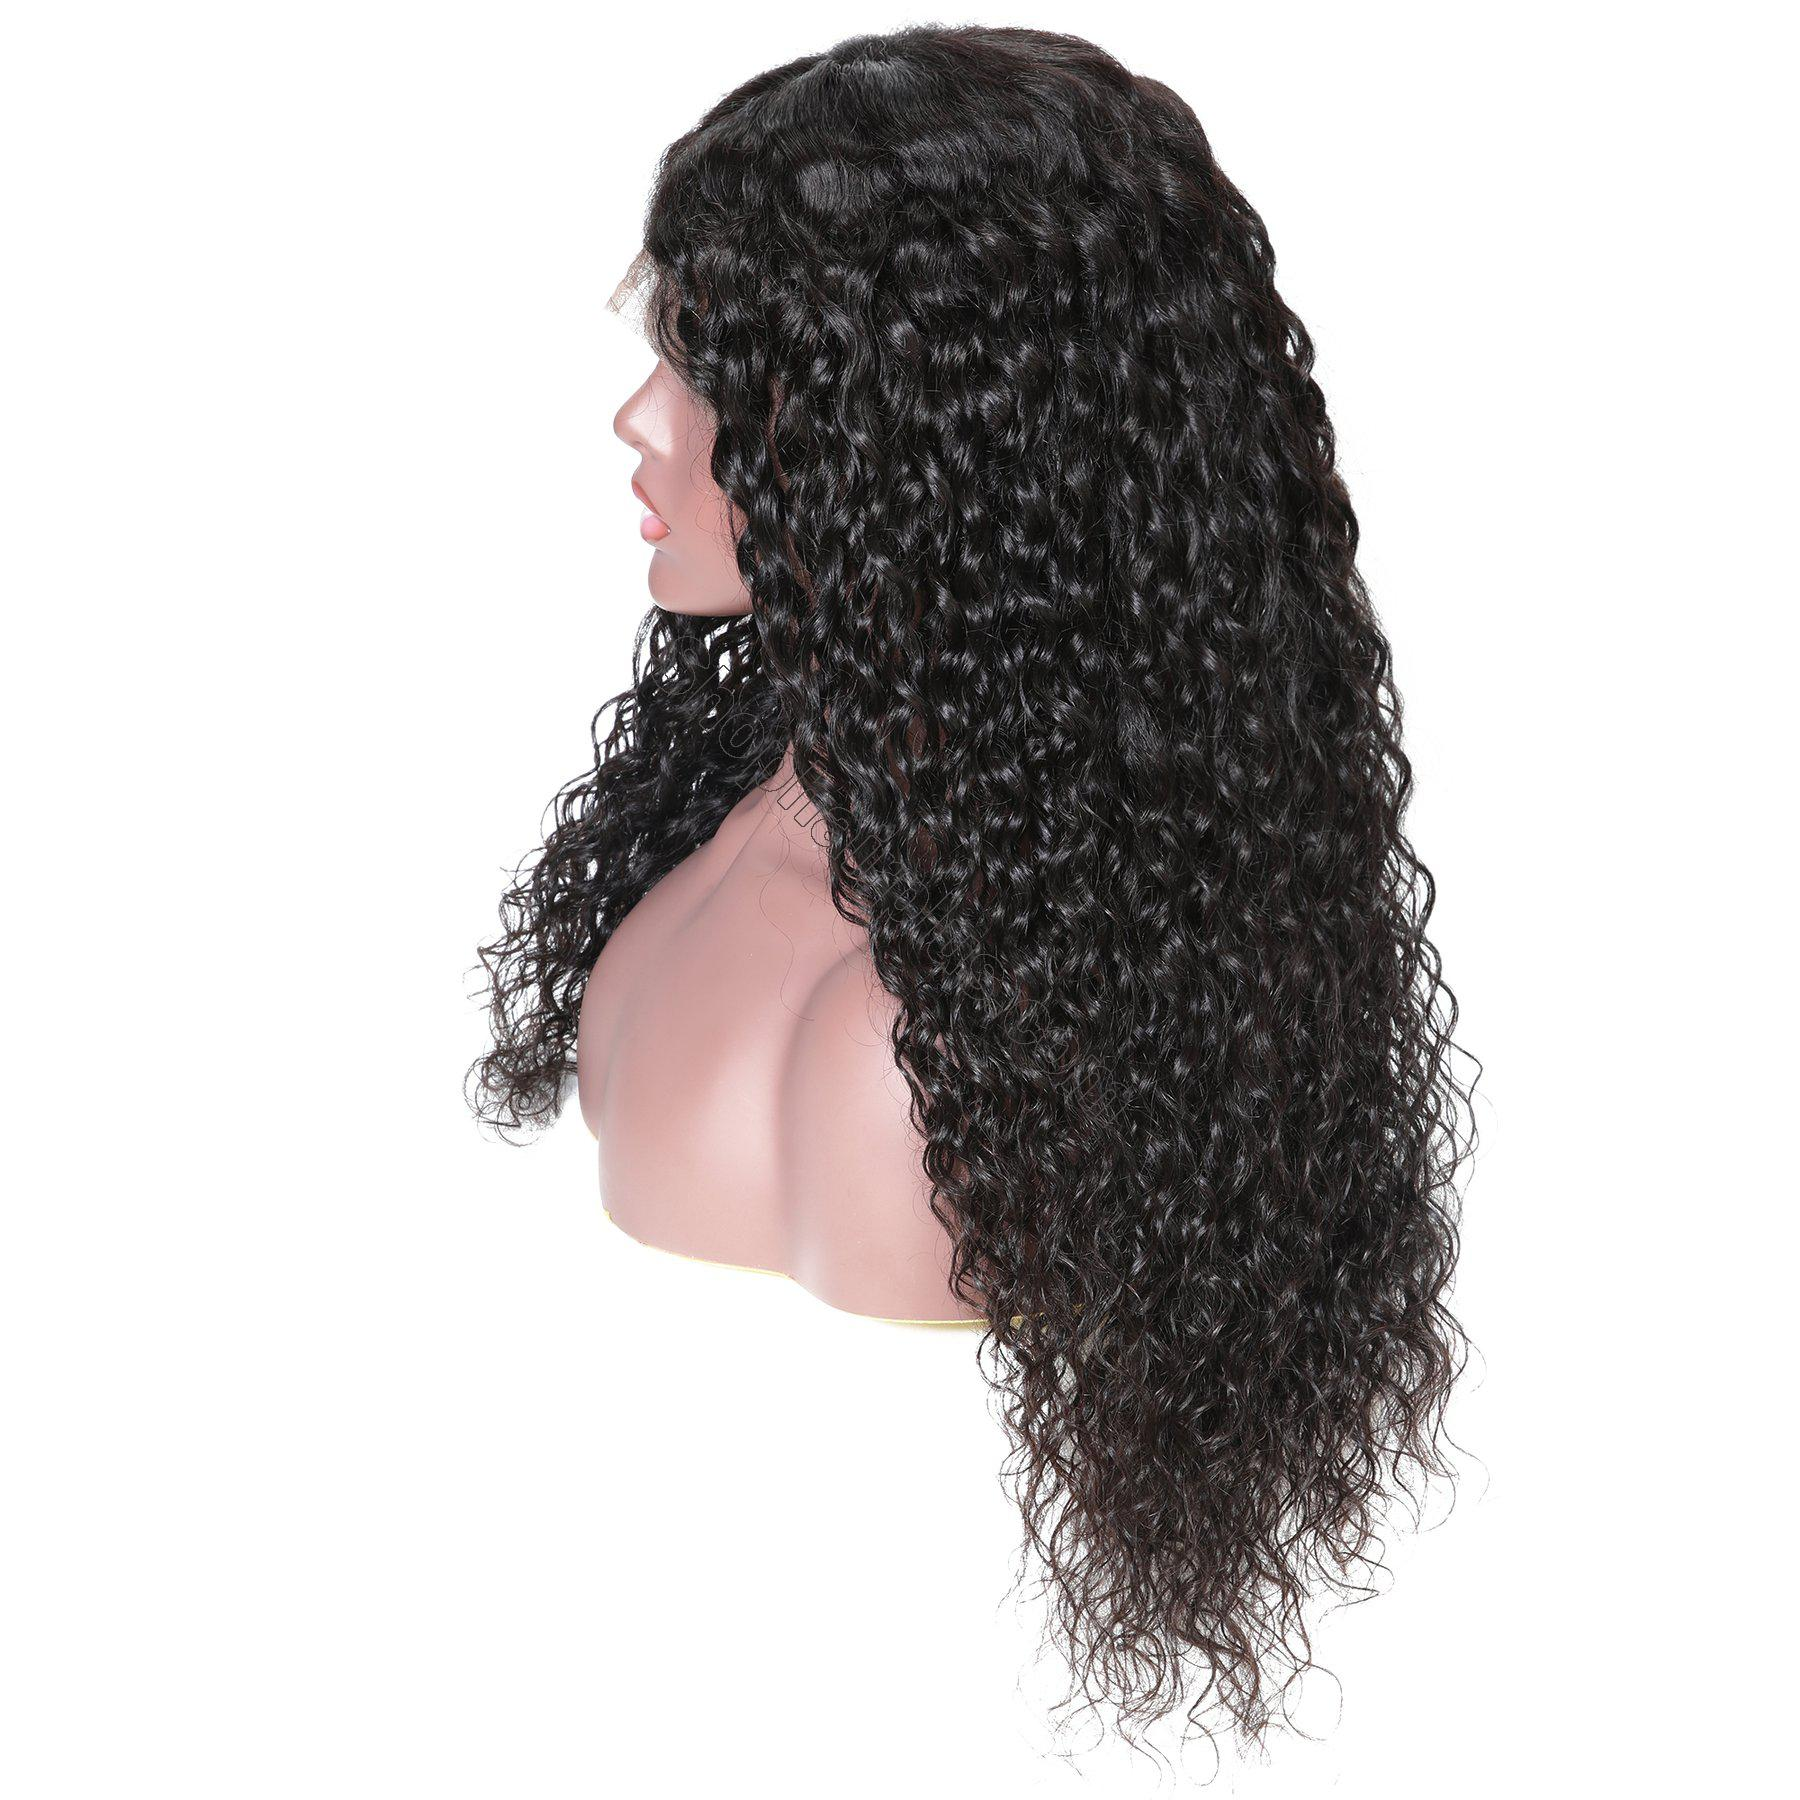 9A 150%/180% Density Water Wave Curly Lace Human Hair Wig, 13*4/13*6 360 Lace Closure 10